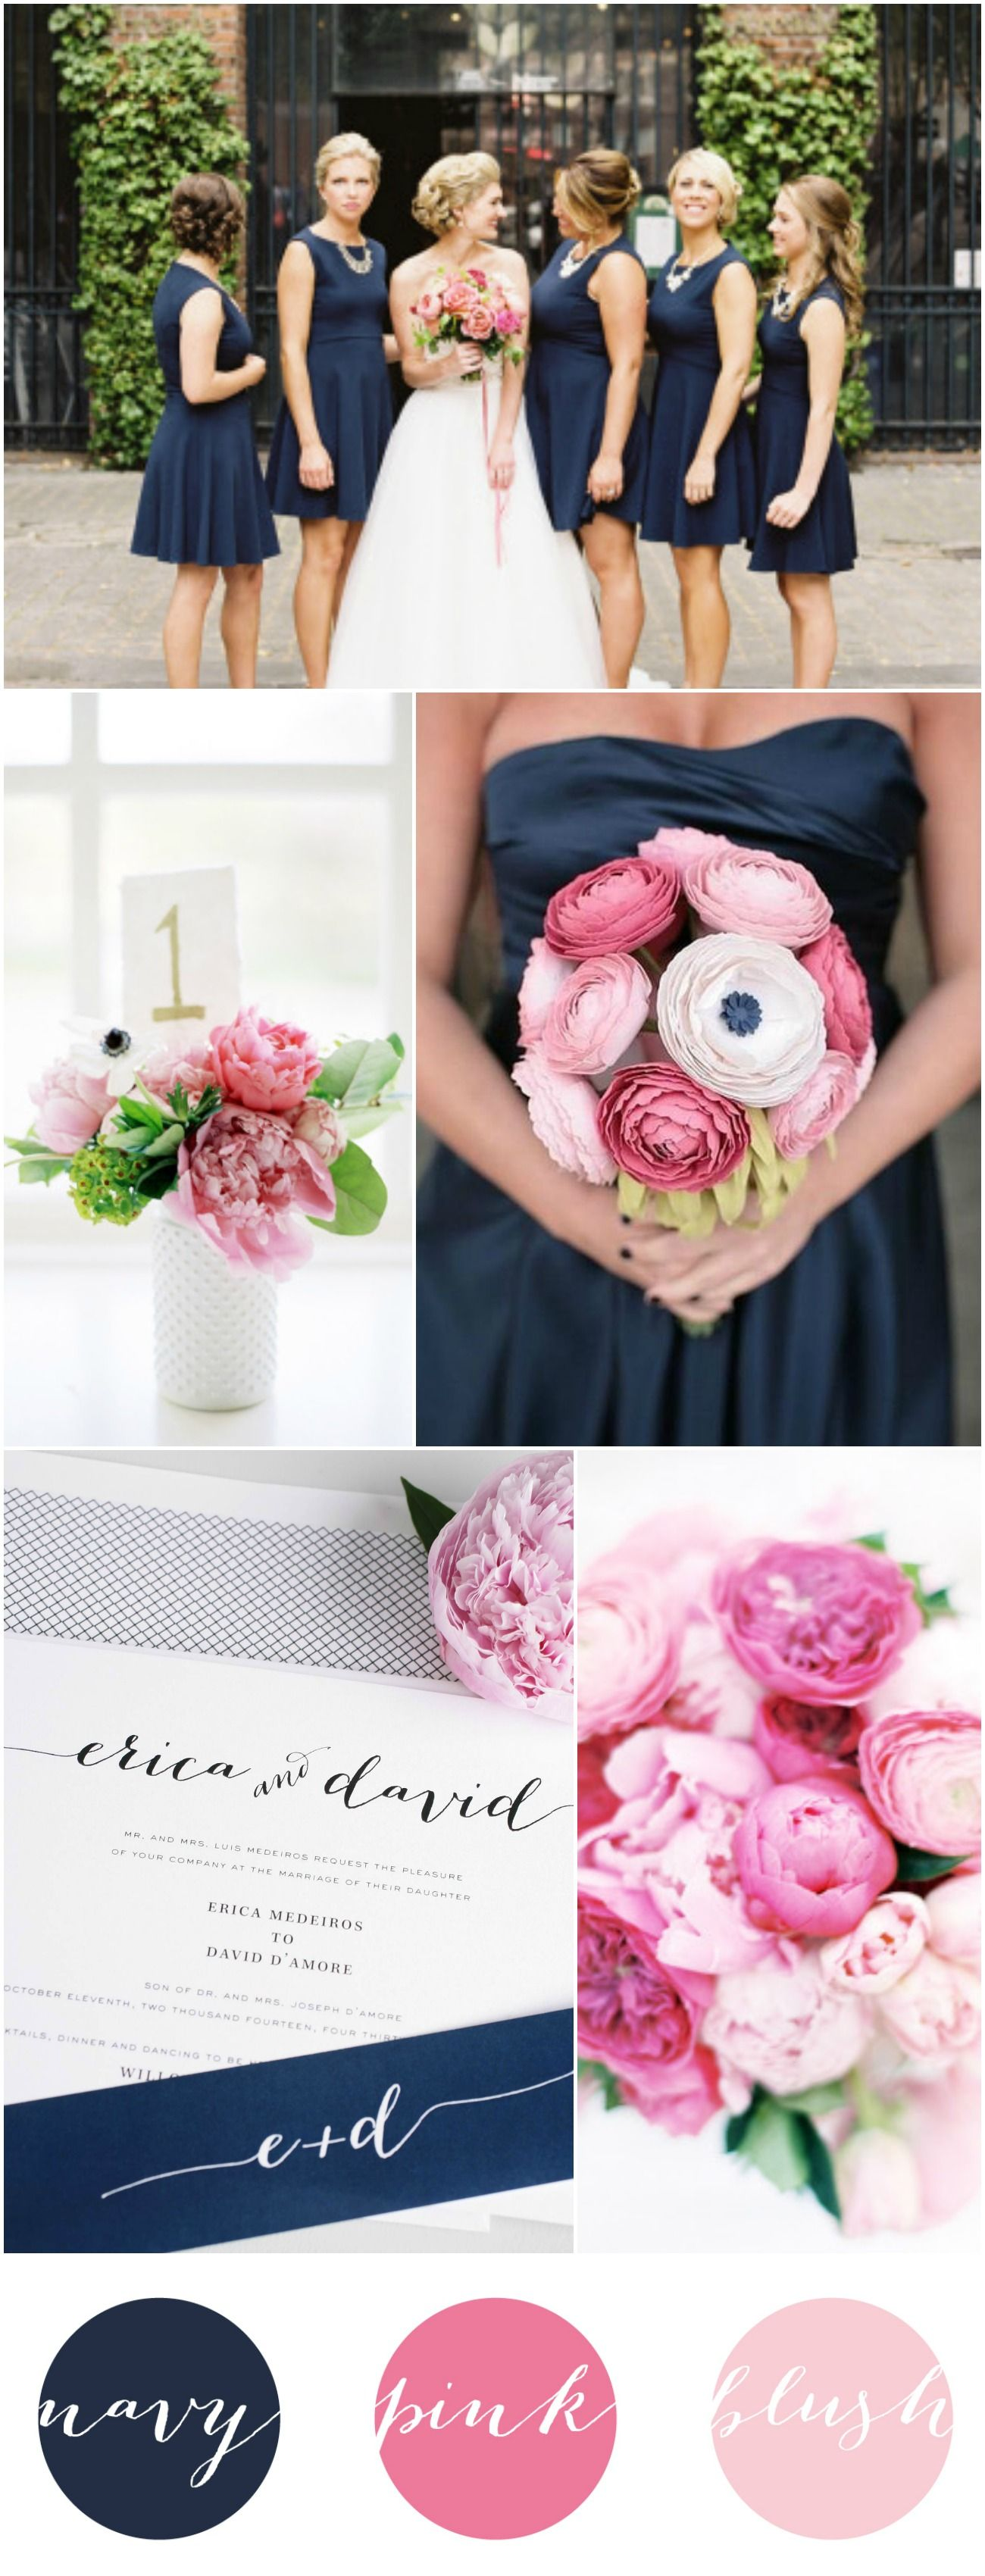 Hochzeit Farben Romantic Navy 43 Pink 43 Blush Wedding Inspiration